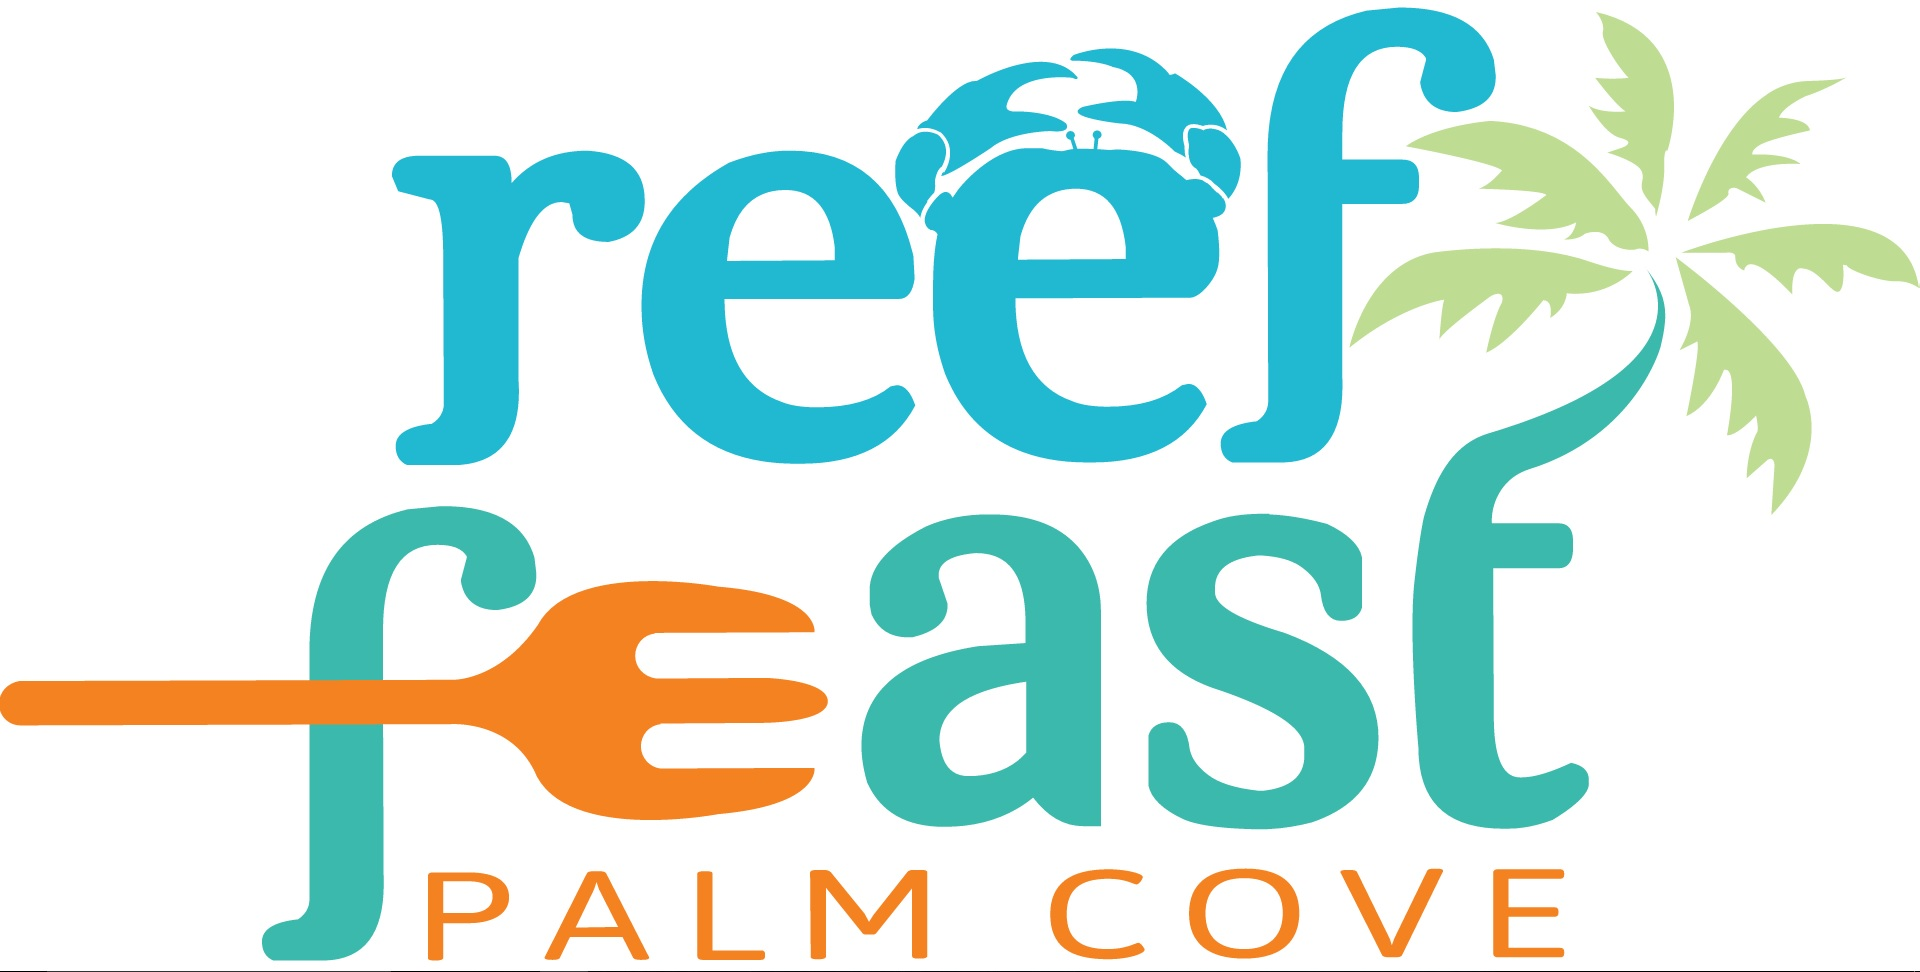 Reef Feast 2016 @ Palm Cove